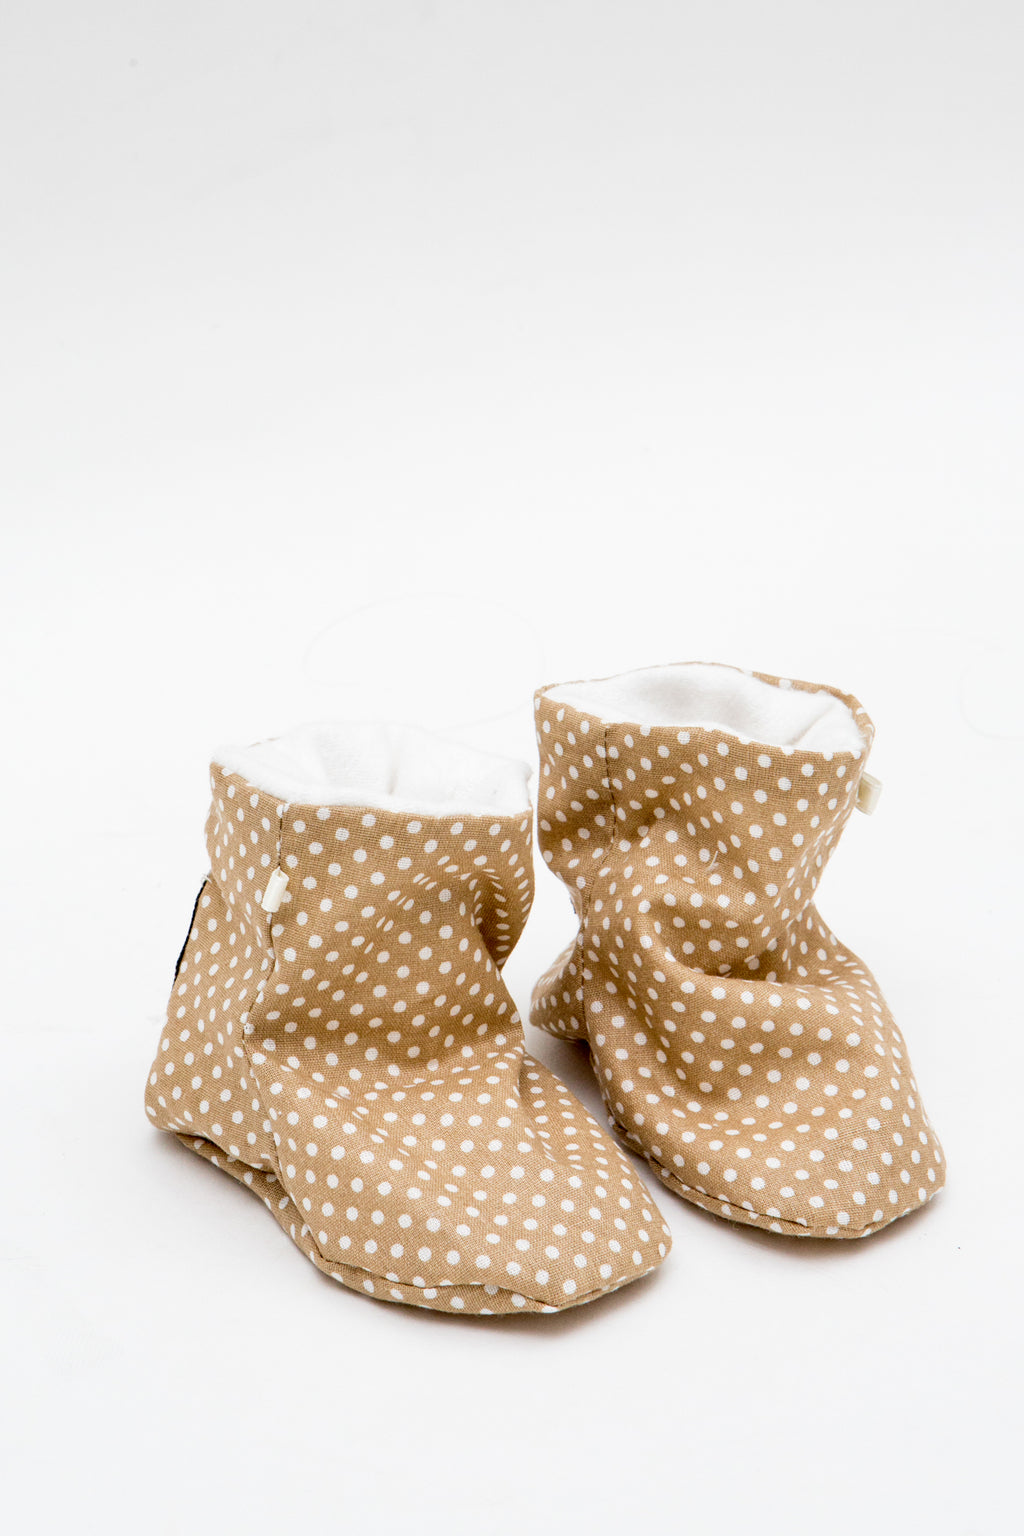 Baby Shoes in Beige Polka Dot